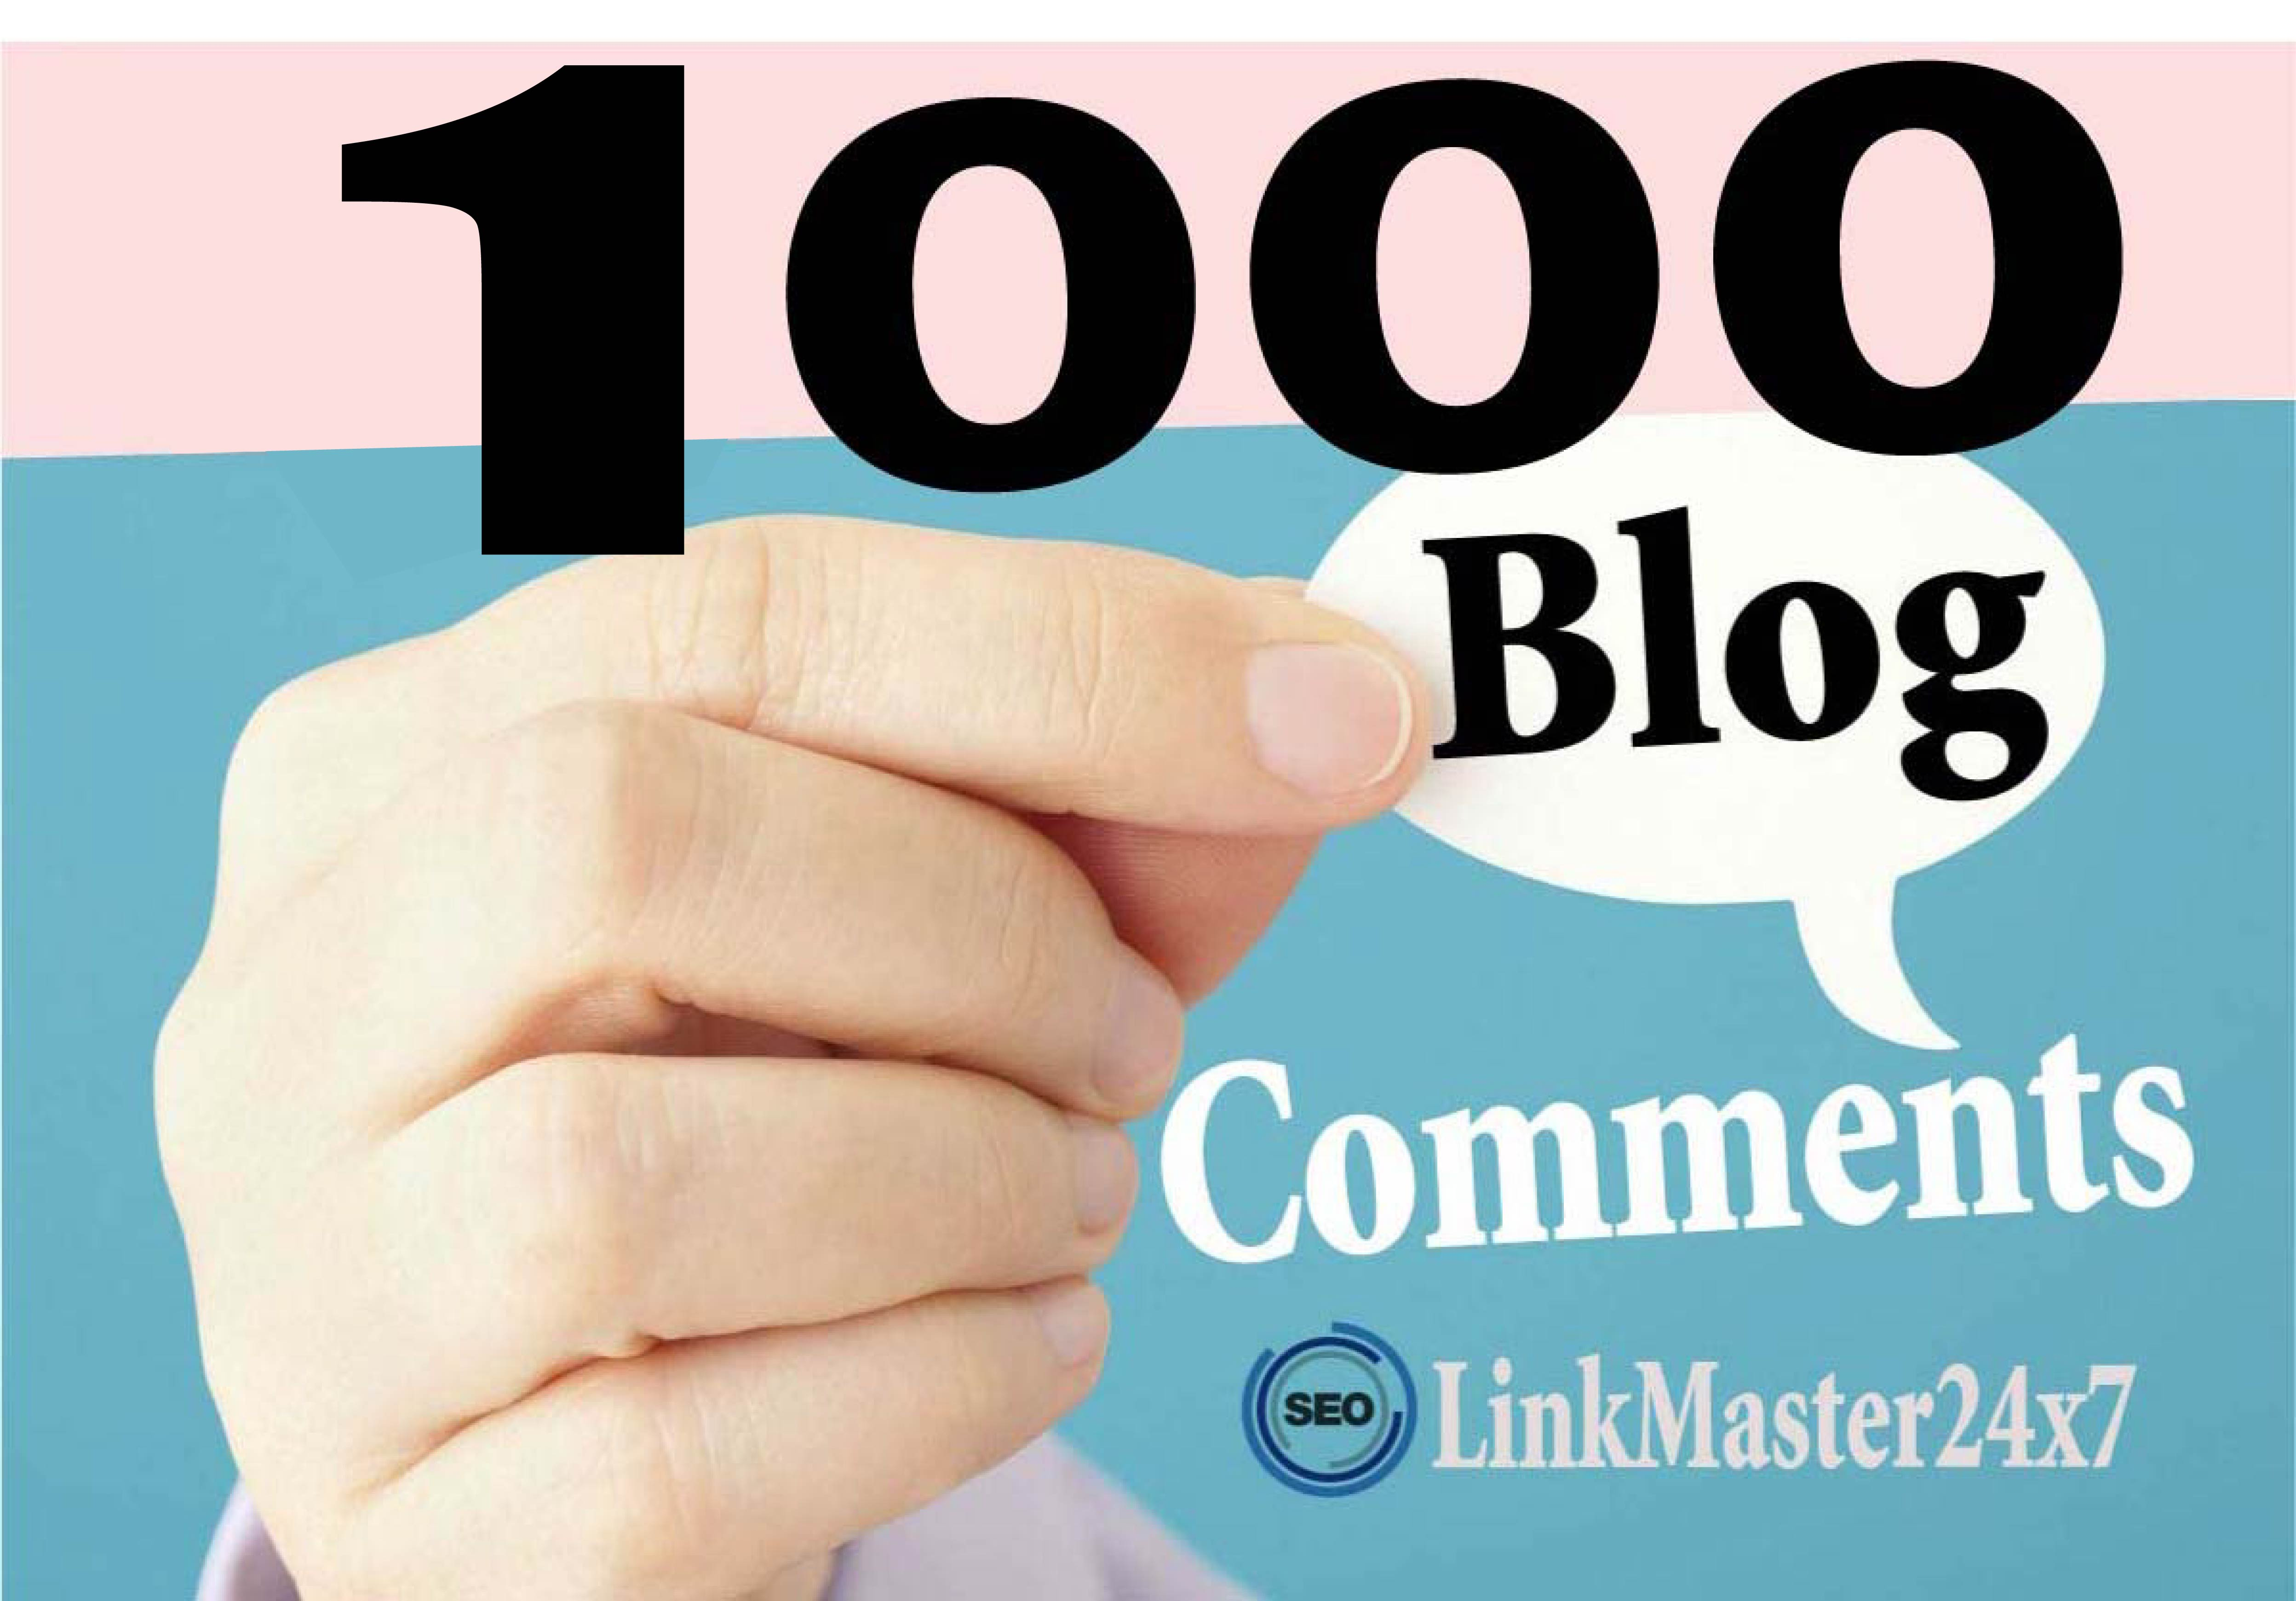 1,000 SEO Blog Comment Backlinks to Rank Your Website And GSA Blast